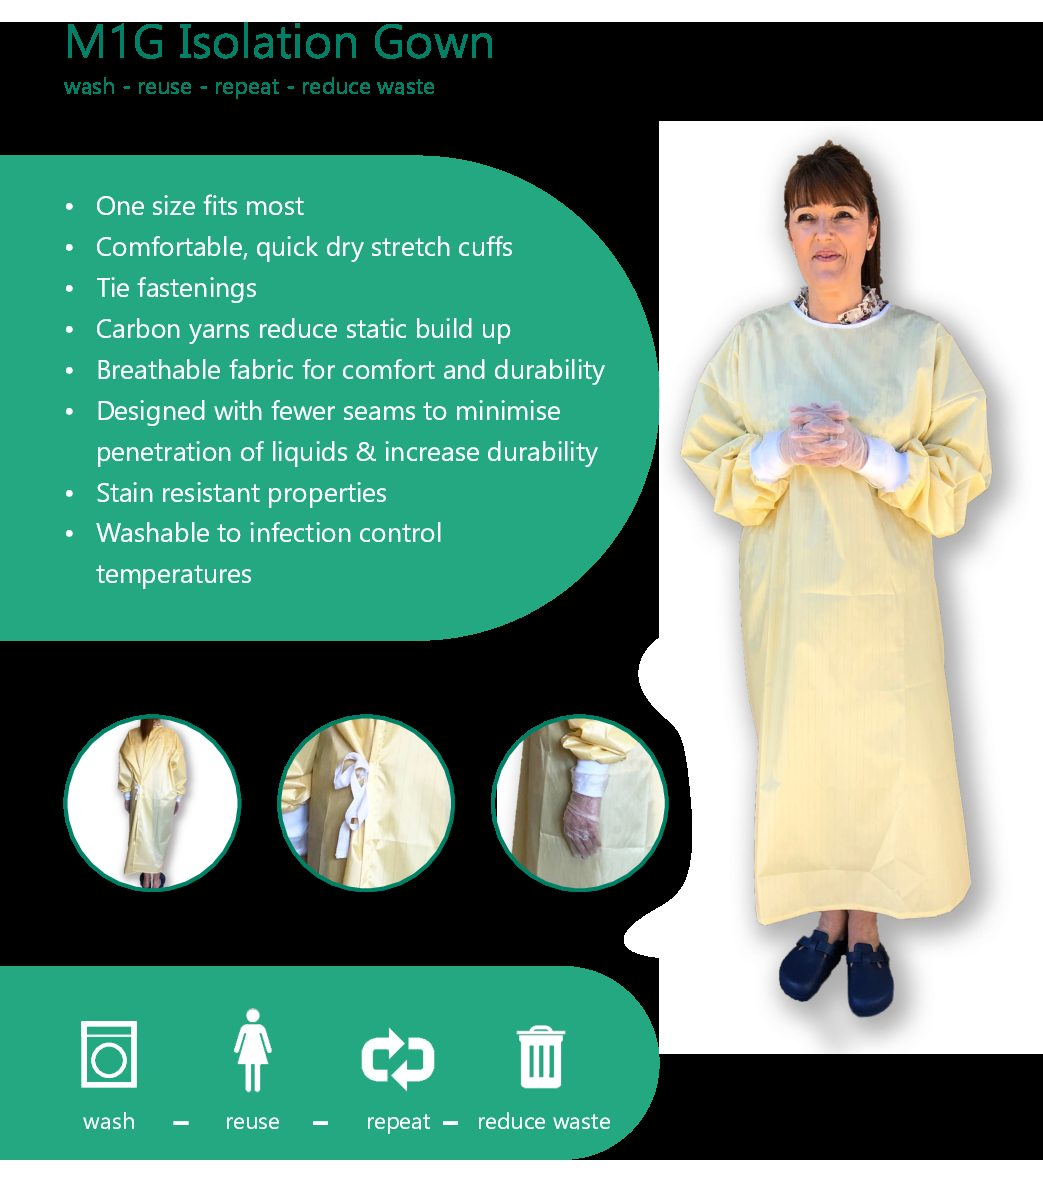 Washable Isolation Gown